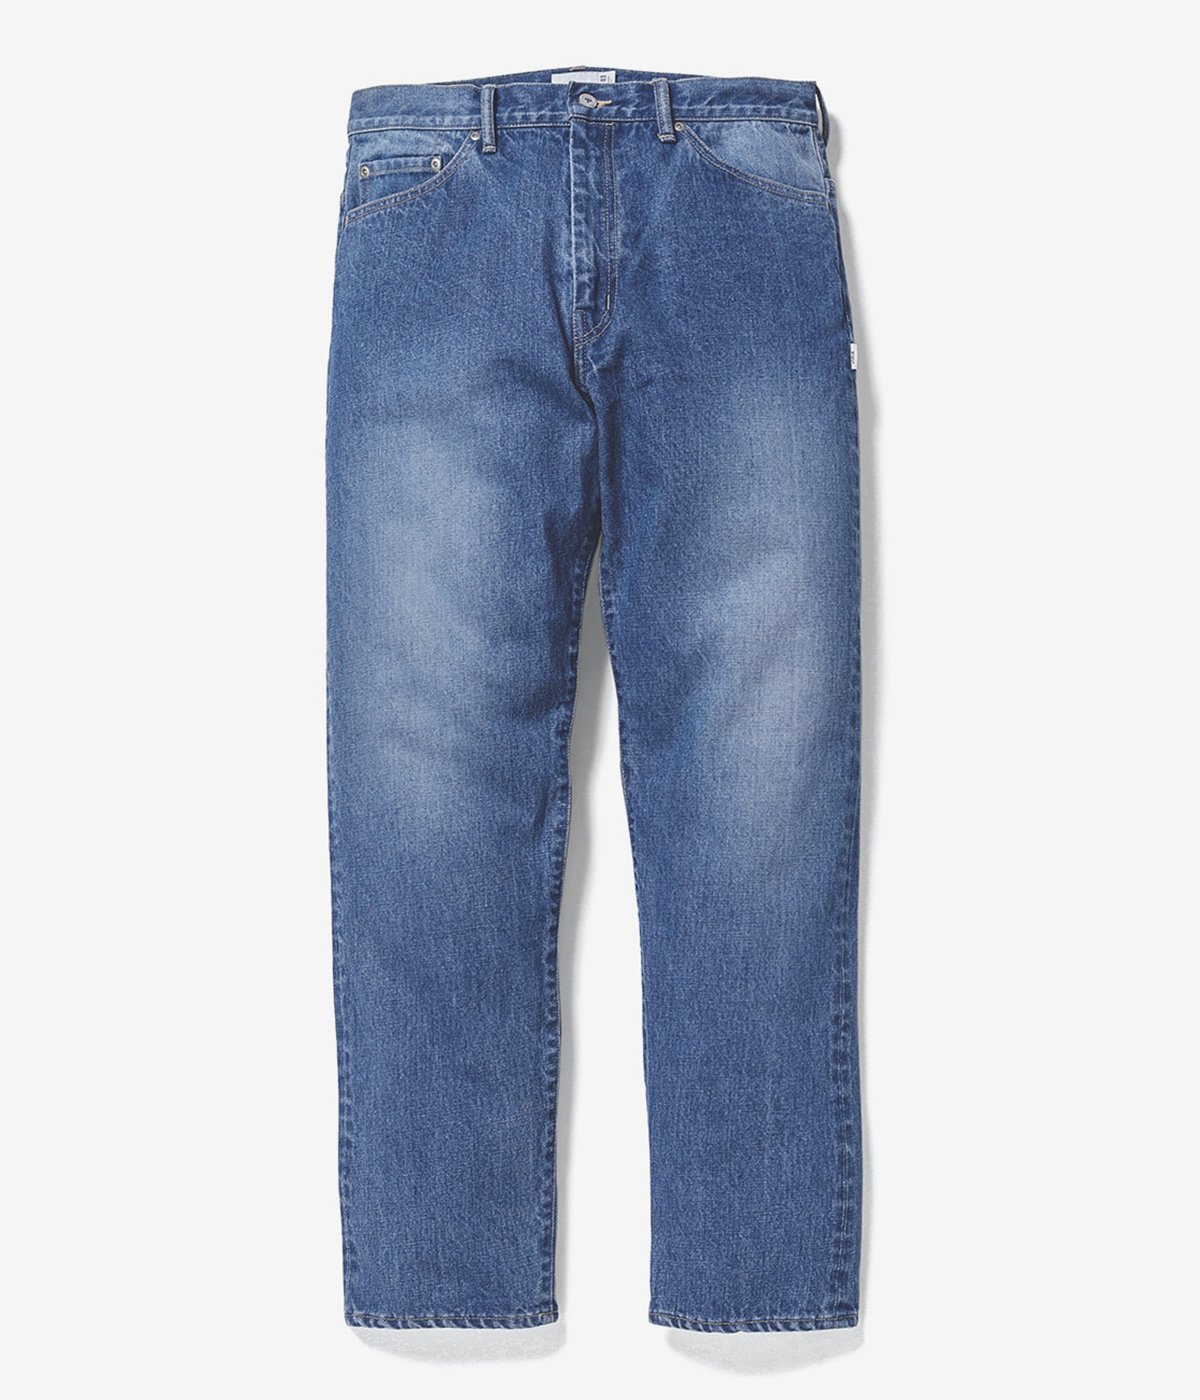 BLUES BAGGY / TROUSERS. COTTON. DENIM